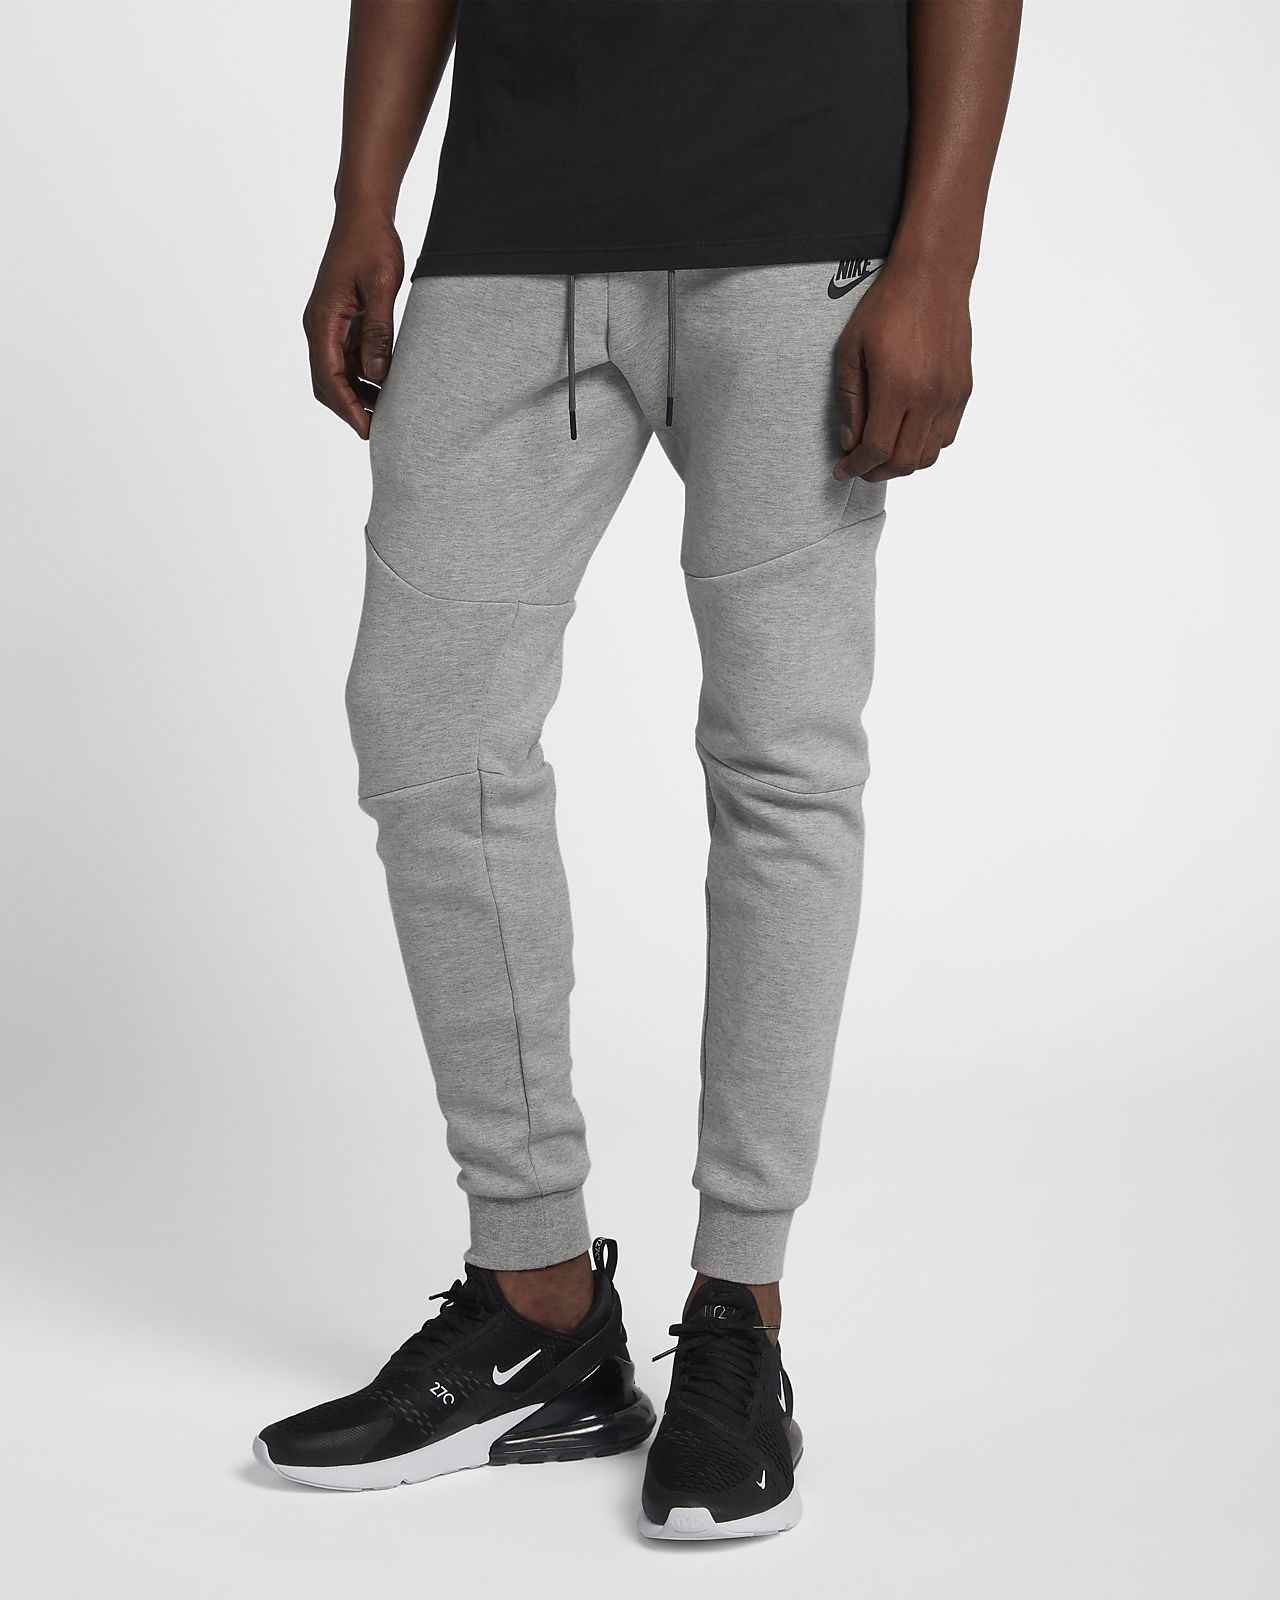 31ea2211a149b6 Nike Sportswear Tech Fleece Men s Joggers. Nike.com